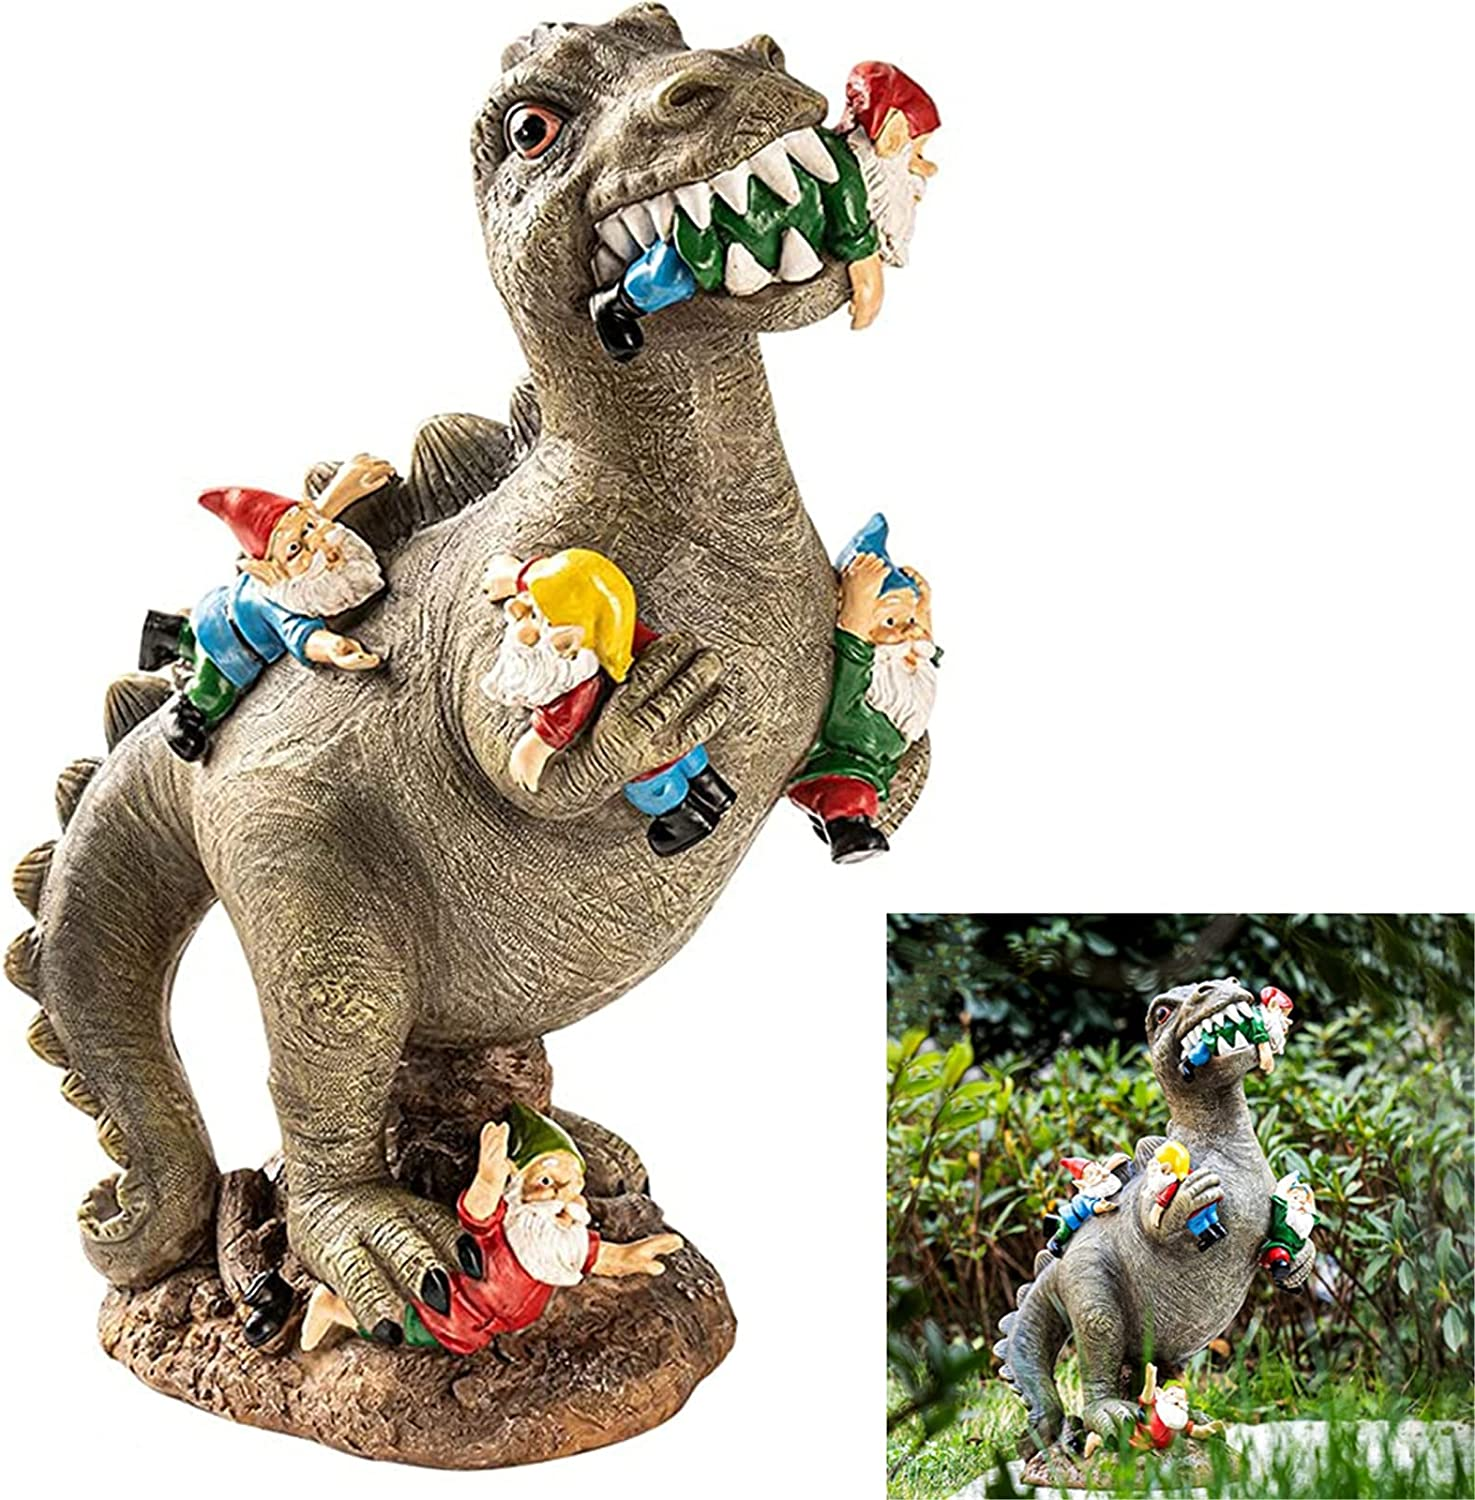 The Great Garden Gnome Massacre, Dinosaur Eating Gnomes Garden Art Outdoor Windproof Garden Decoration, Gnomes Garden Ornaments Funny Large, for Indoor Outdoor Home or Office (12in)